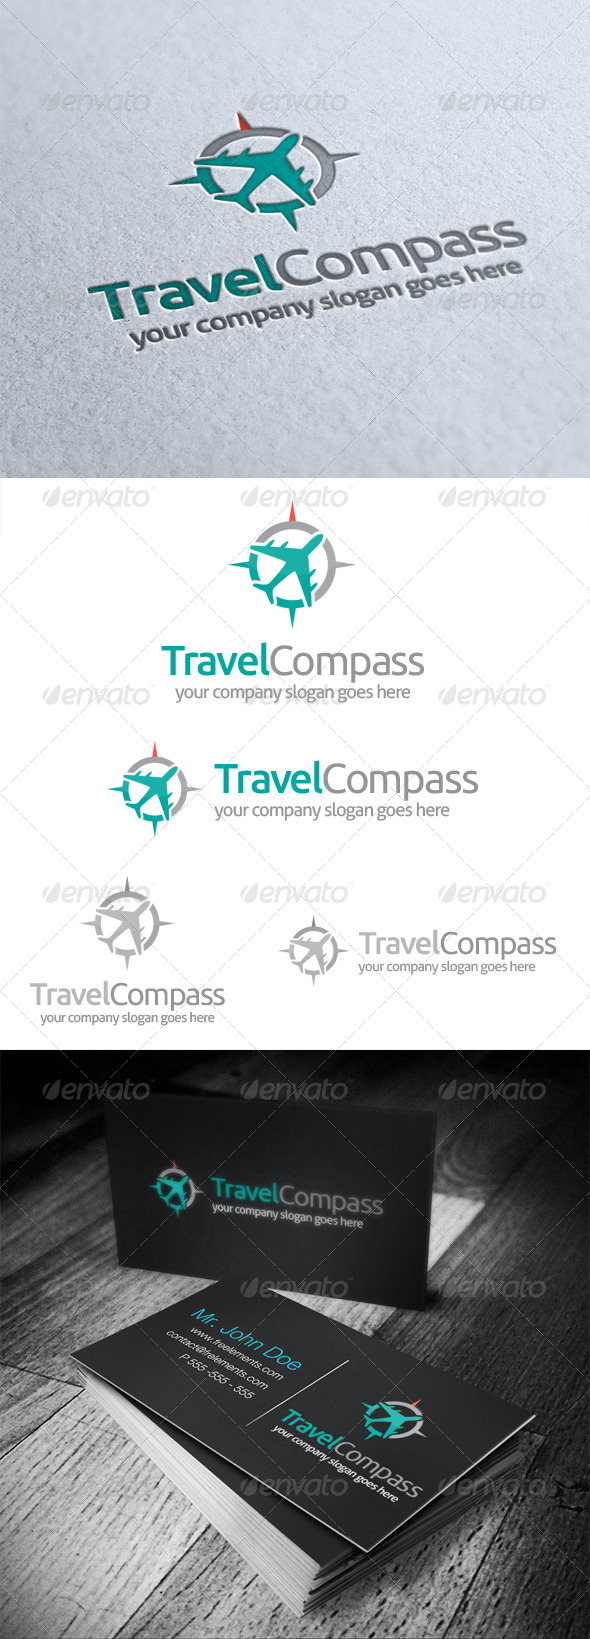 GraphicRiver Travel Compass Logo 4860284